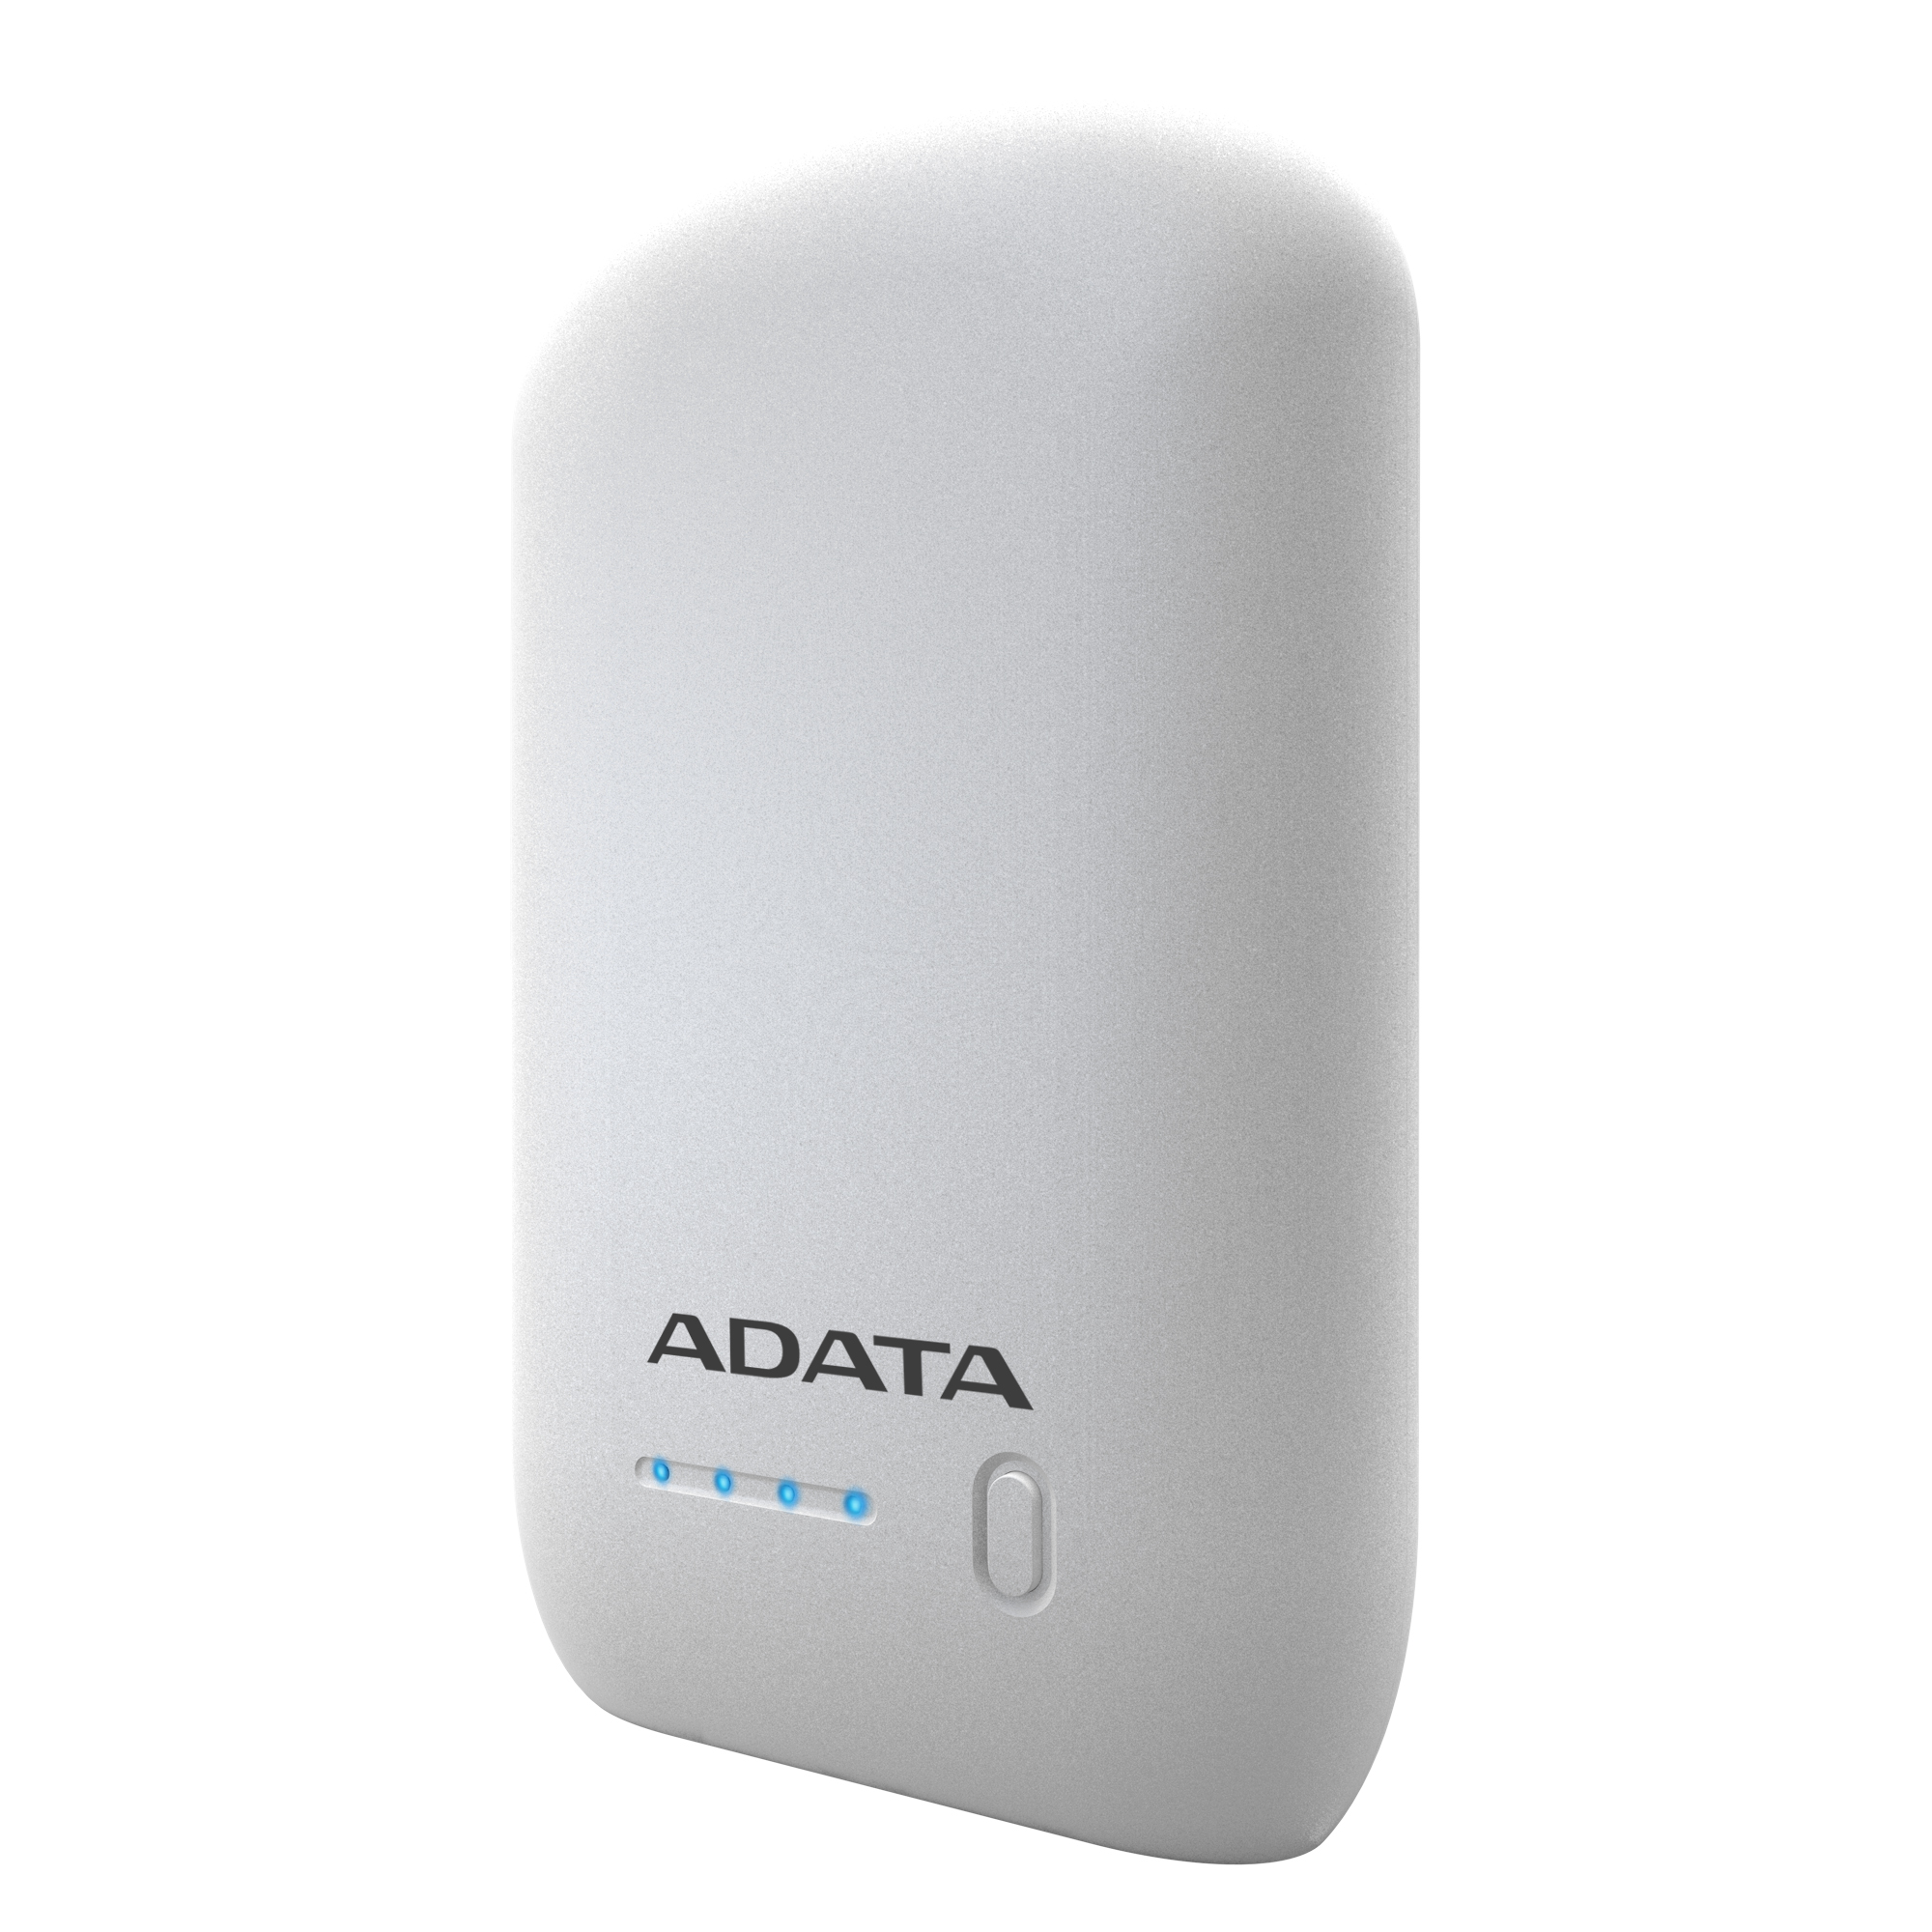 ADATA P10050 Power Bank 10050mAh bílá